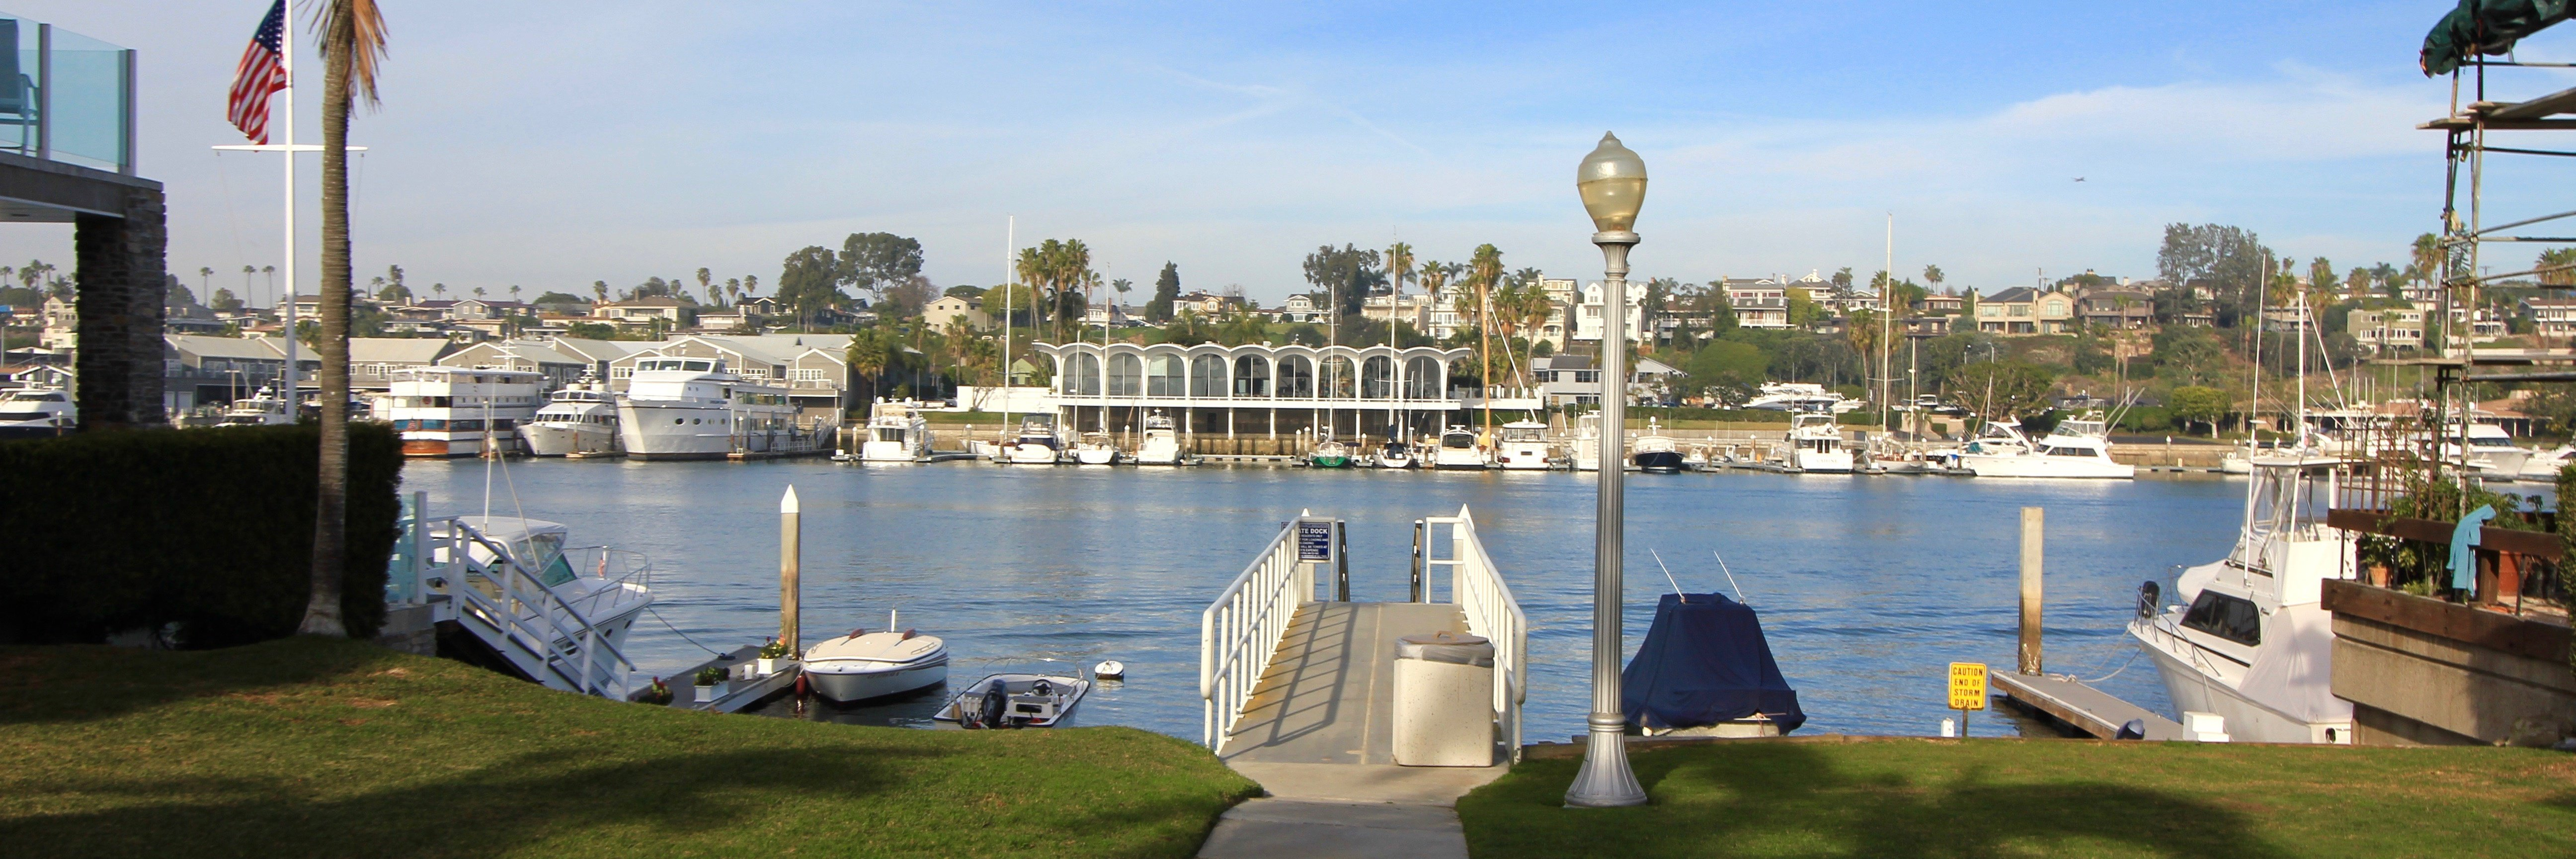 Lido Isle is a home community located in the city of Newport Beach, CA